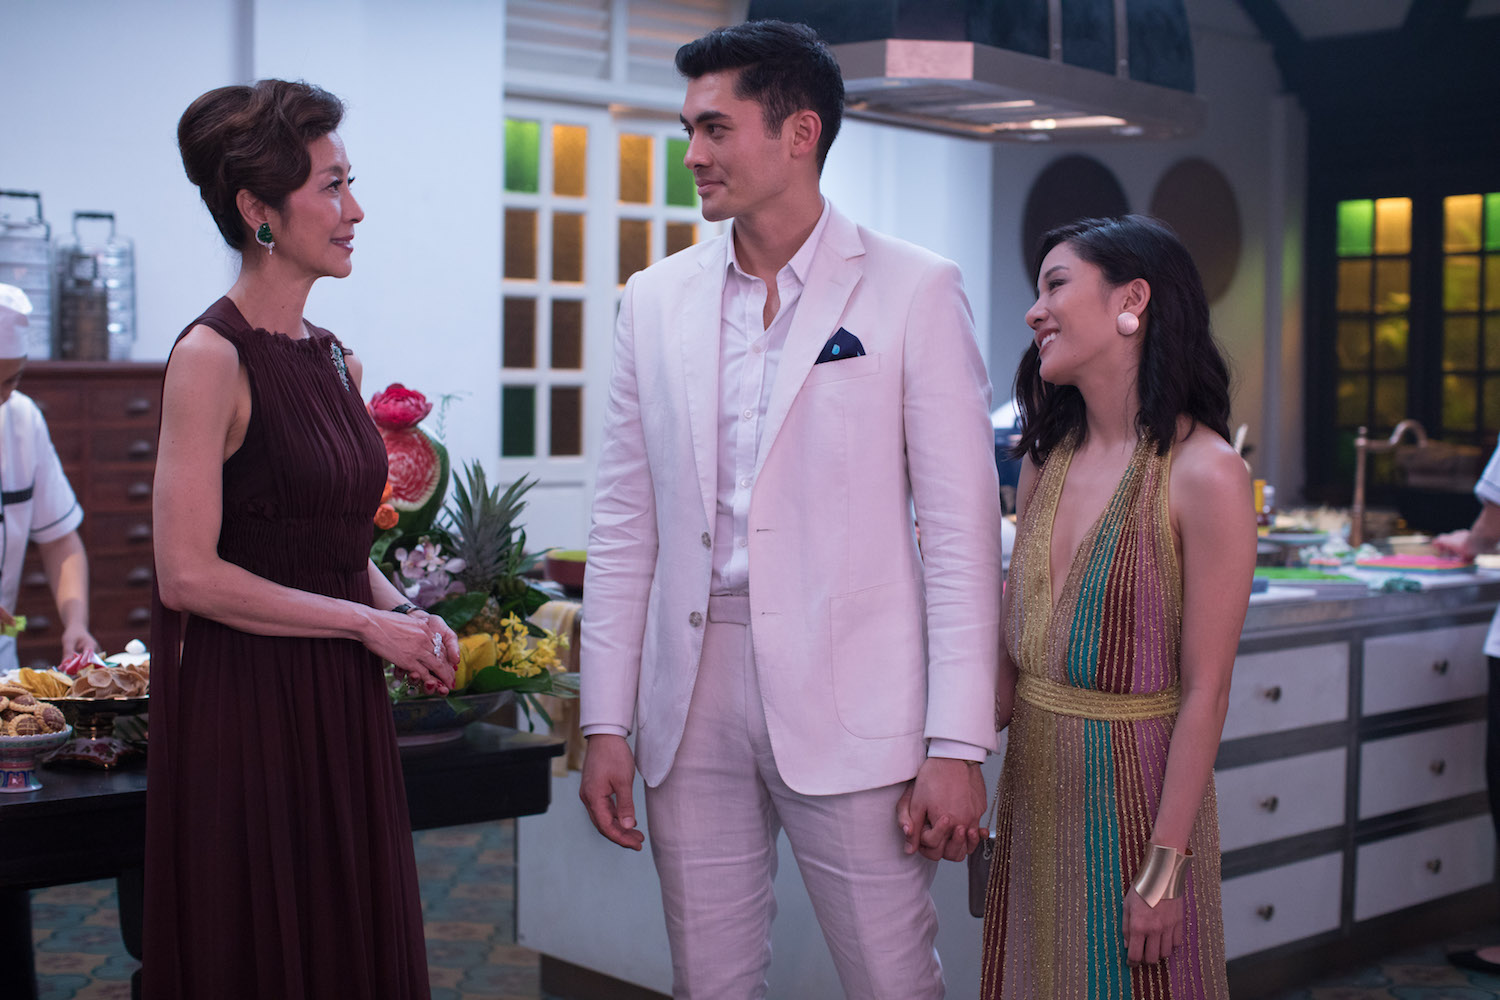 11 crazy addicting books to read if you loved <em>Crazy Rich Asians</em>